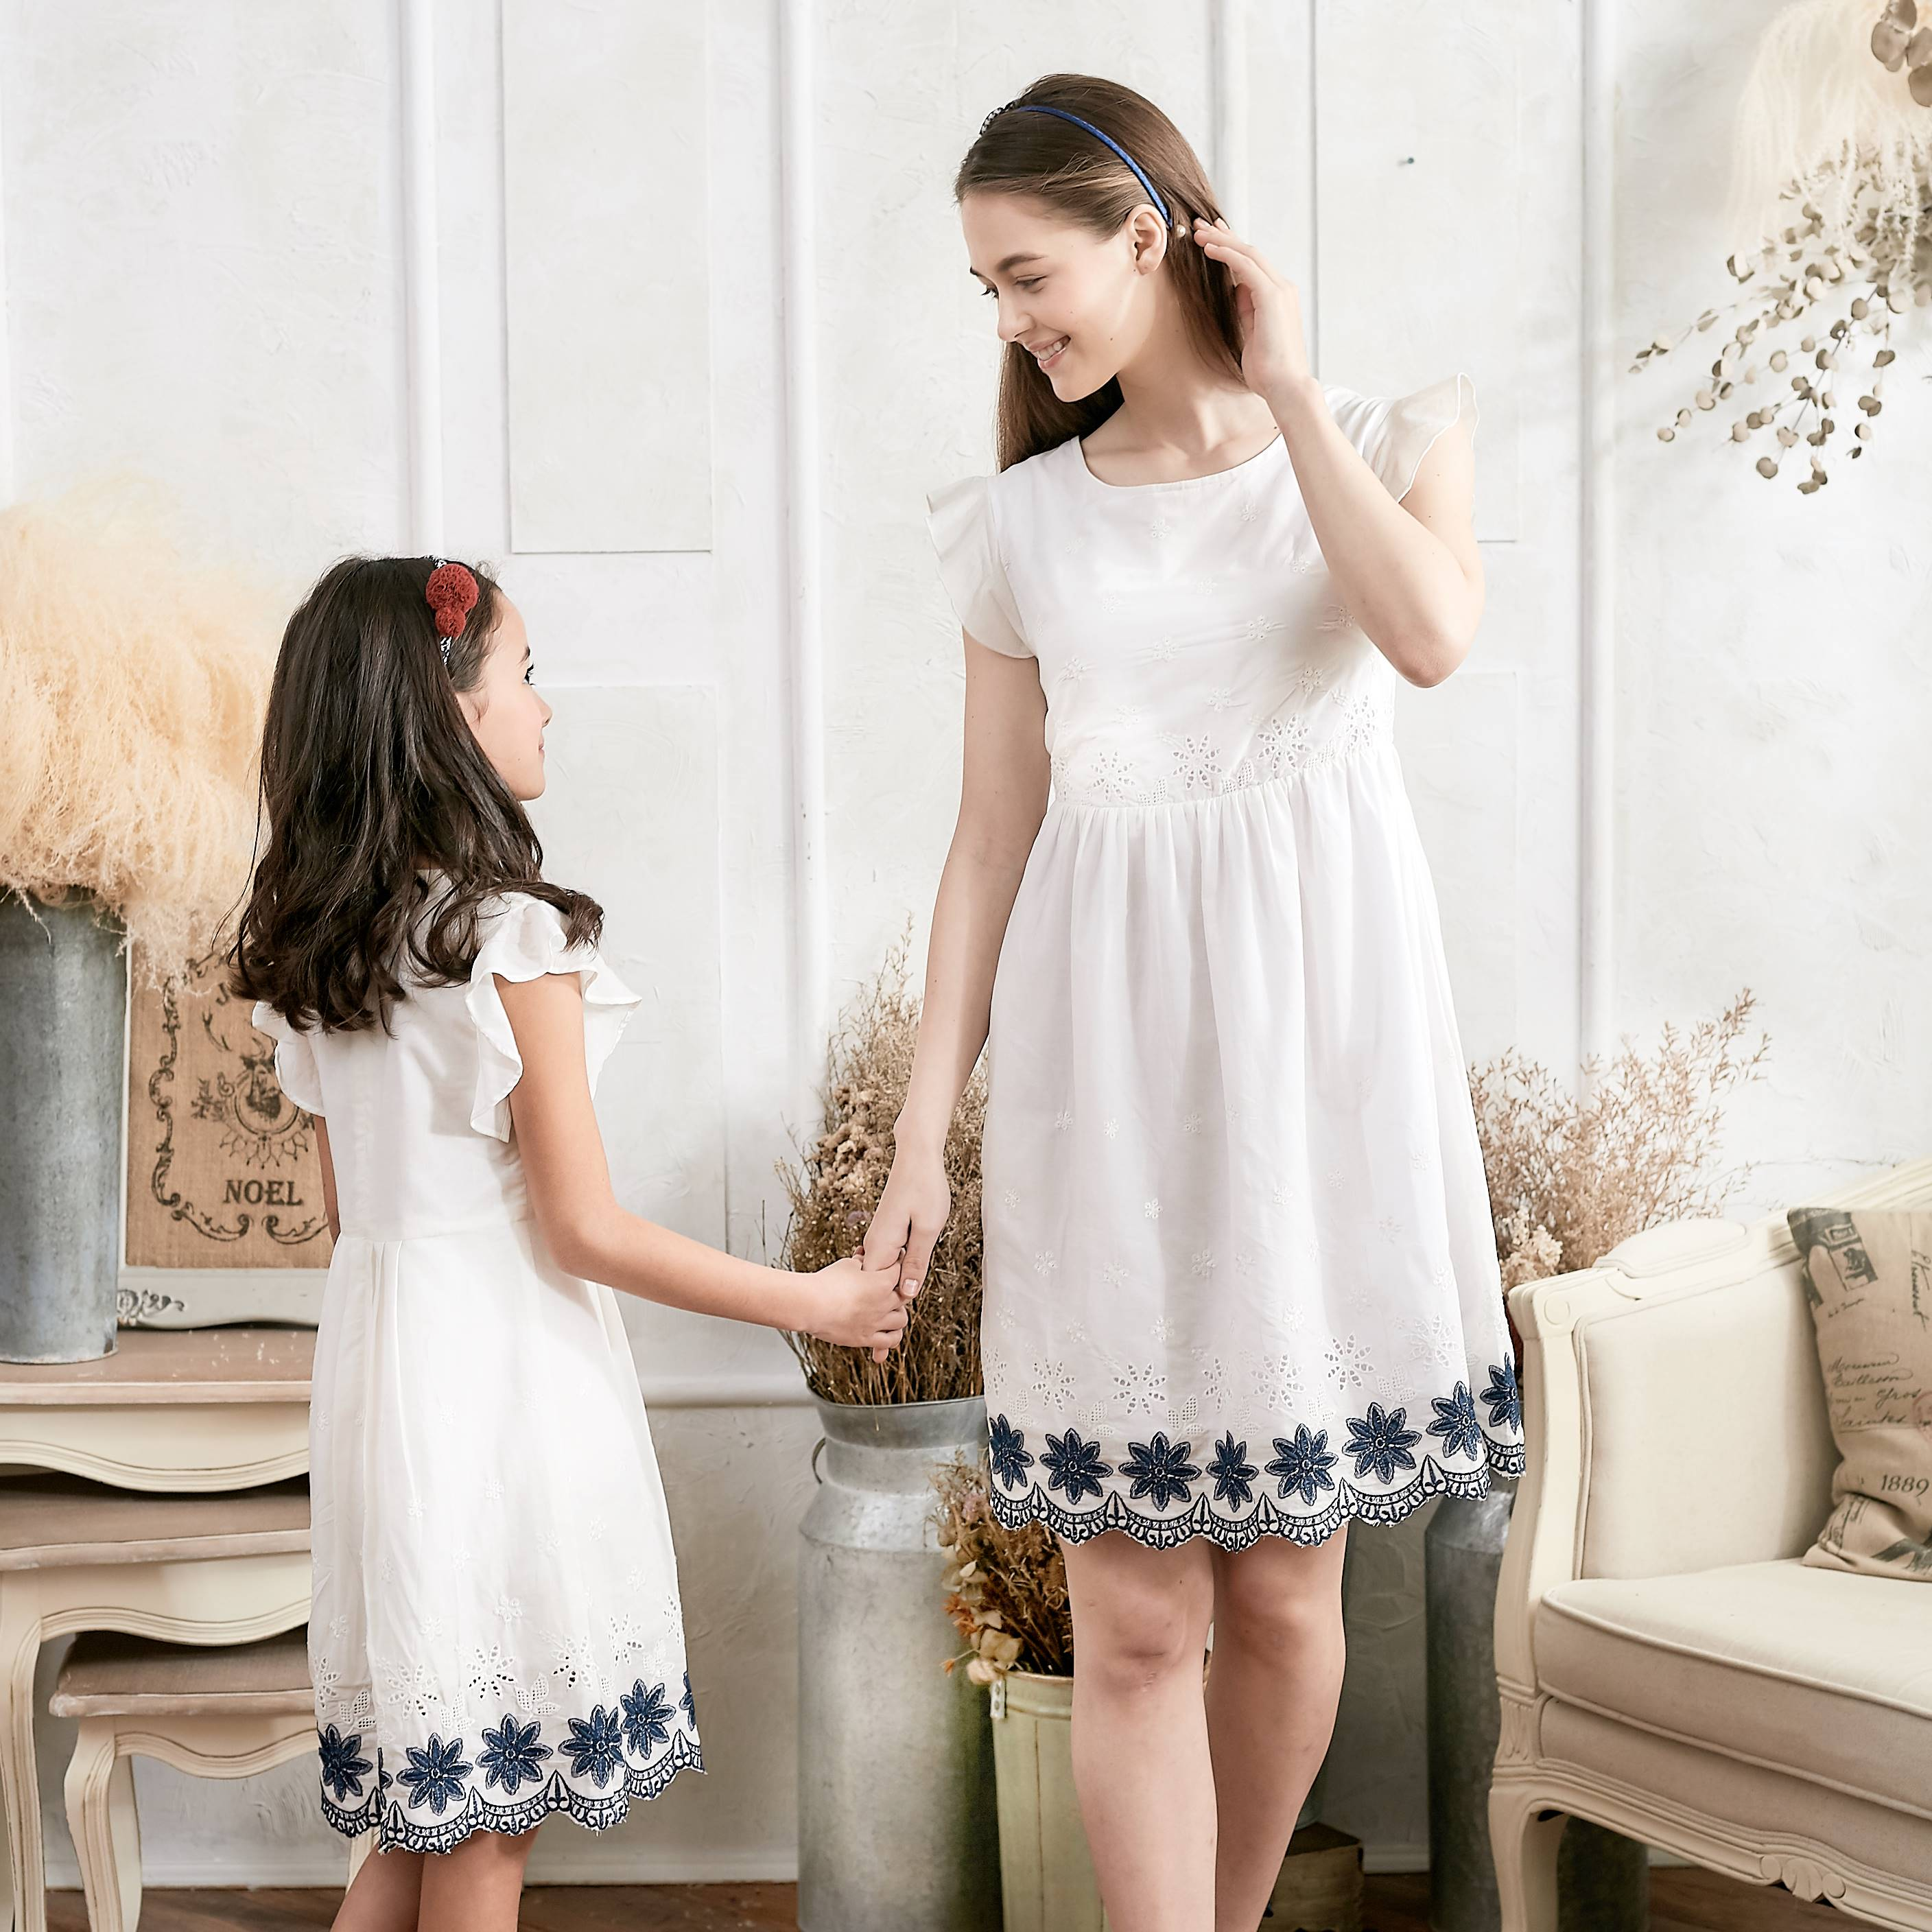 (Mommy & Me) Floral Embroidered Fit & Flare Dress (set of 2) - Bunny n Bloom Mommy & Me Dress